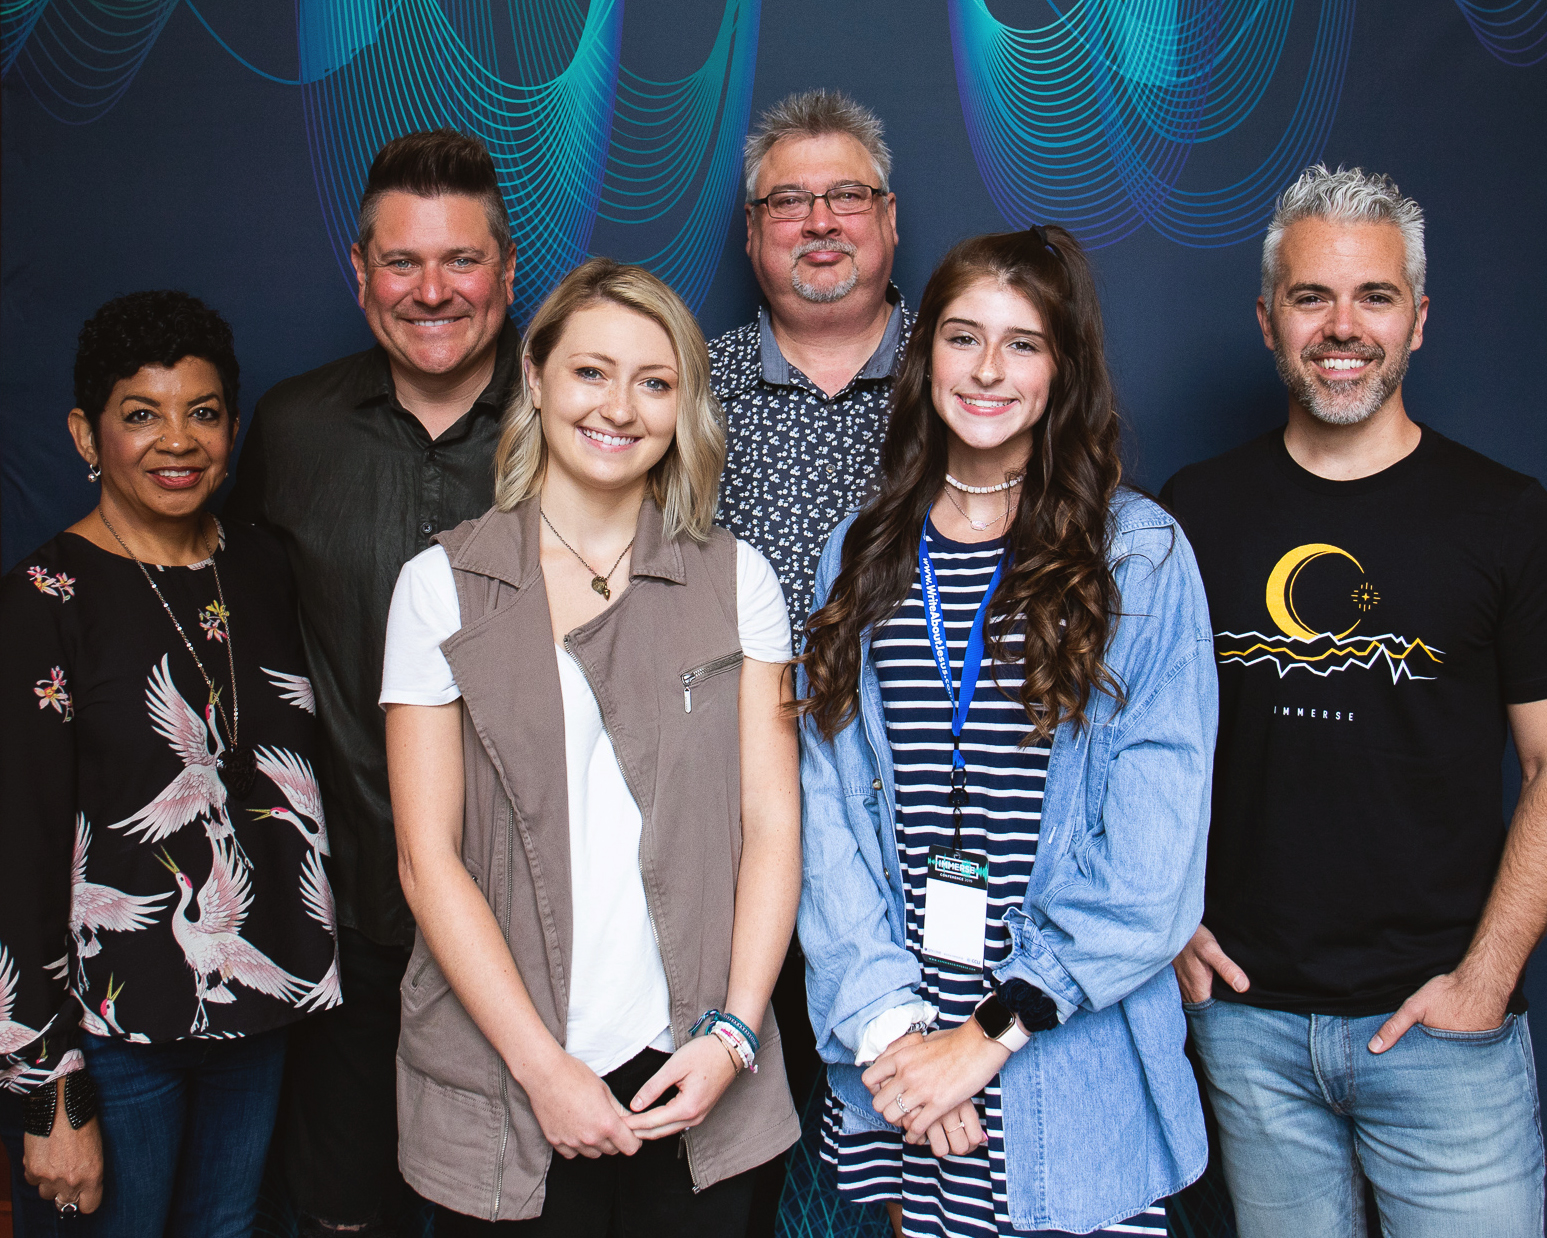 L-R: Jackie Patillo (Executive Director / GMA), Jay DeMarcus (Owner, Red Street Records), Abby Siler (GMA IMMERSE student and scholarship recipient), Don Koch (General Manager, Red Street Records), Kendall Pond (GMA IMMERSE student and scholarship recipient) and Justin Fratt (Director of Operations, GMA) Photo Courtesy of GMA / Gospel Music Association »  CLICK HERE FOR HIGH-RES VERSION